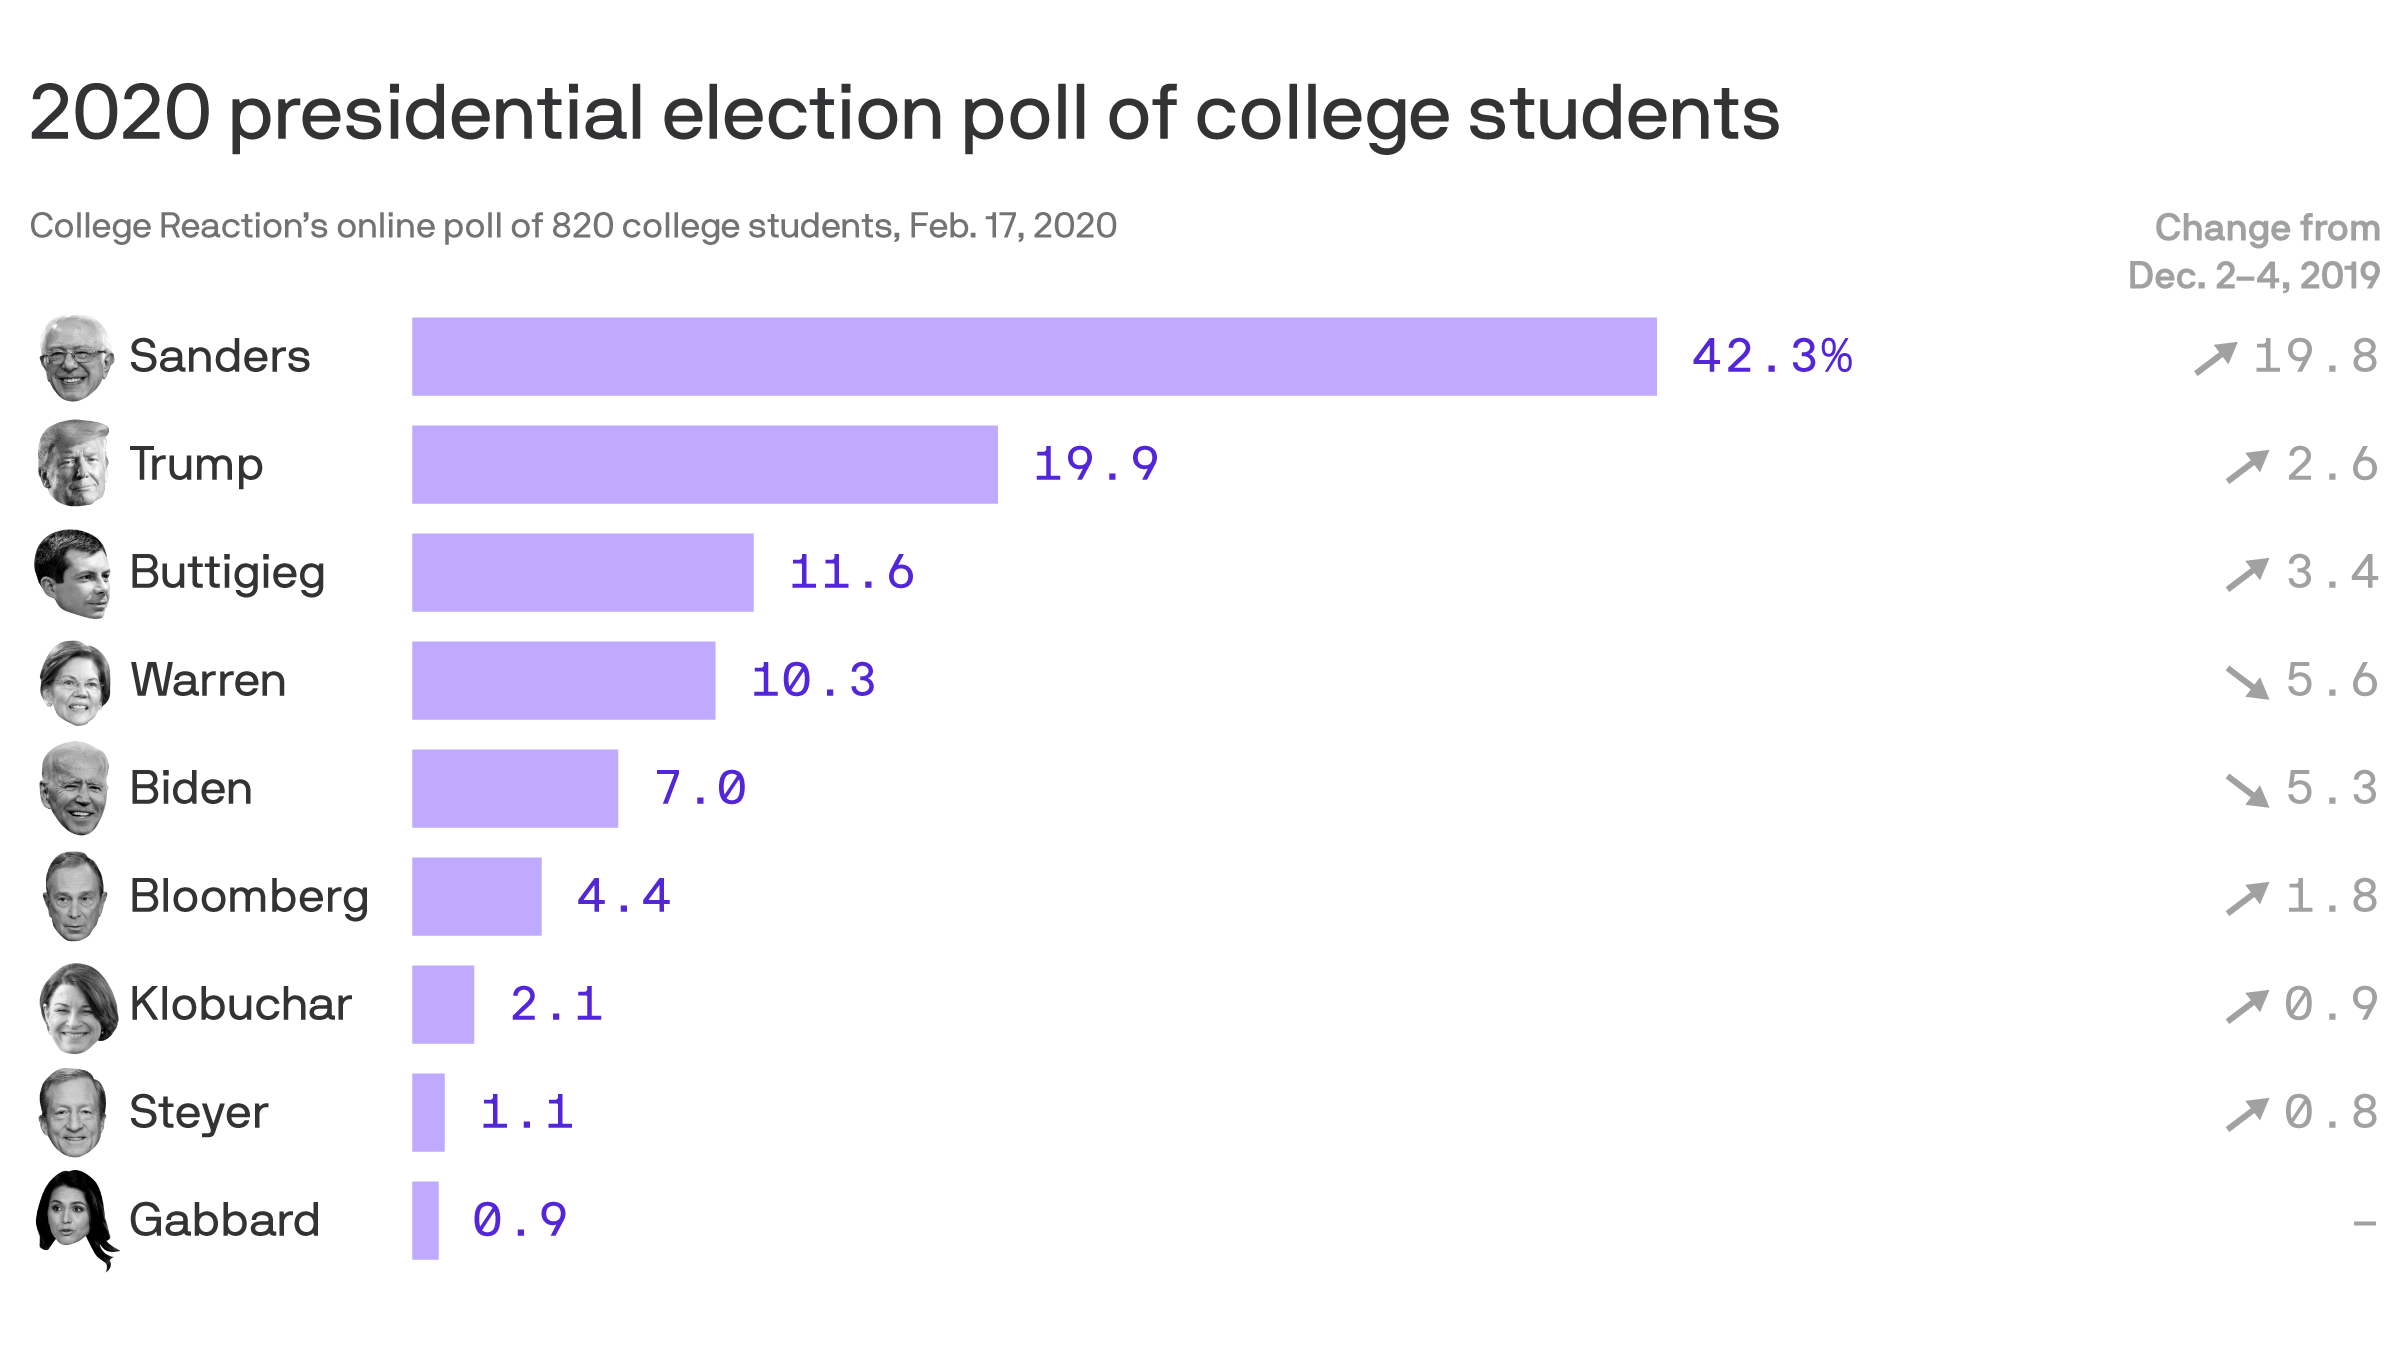 Bernie opens up massive lead among college students - Axios